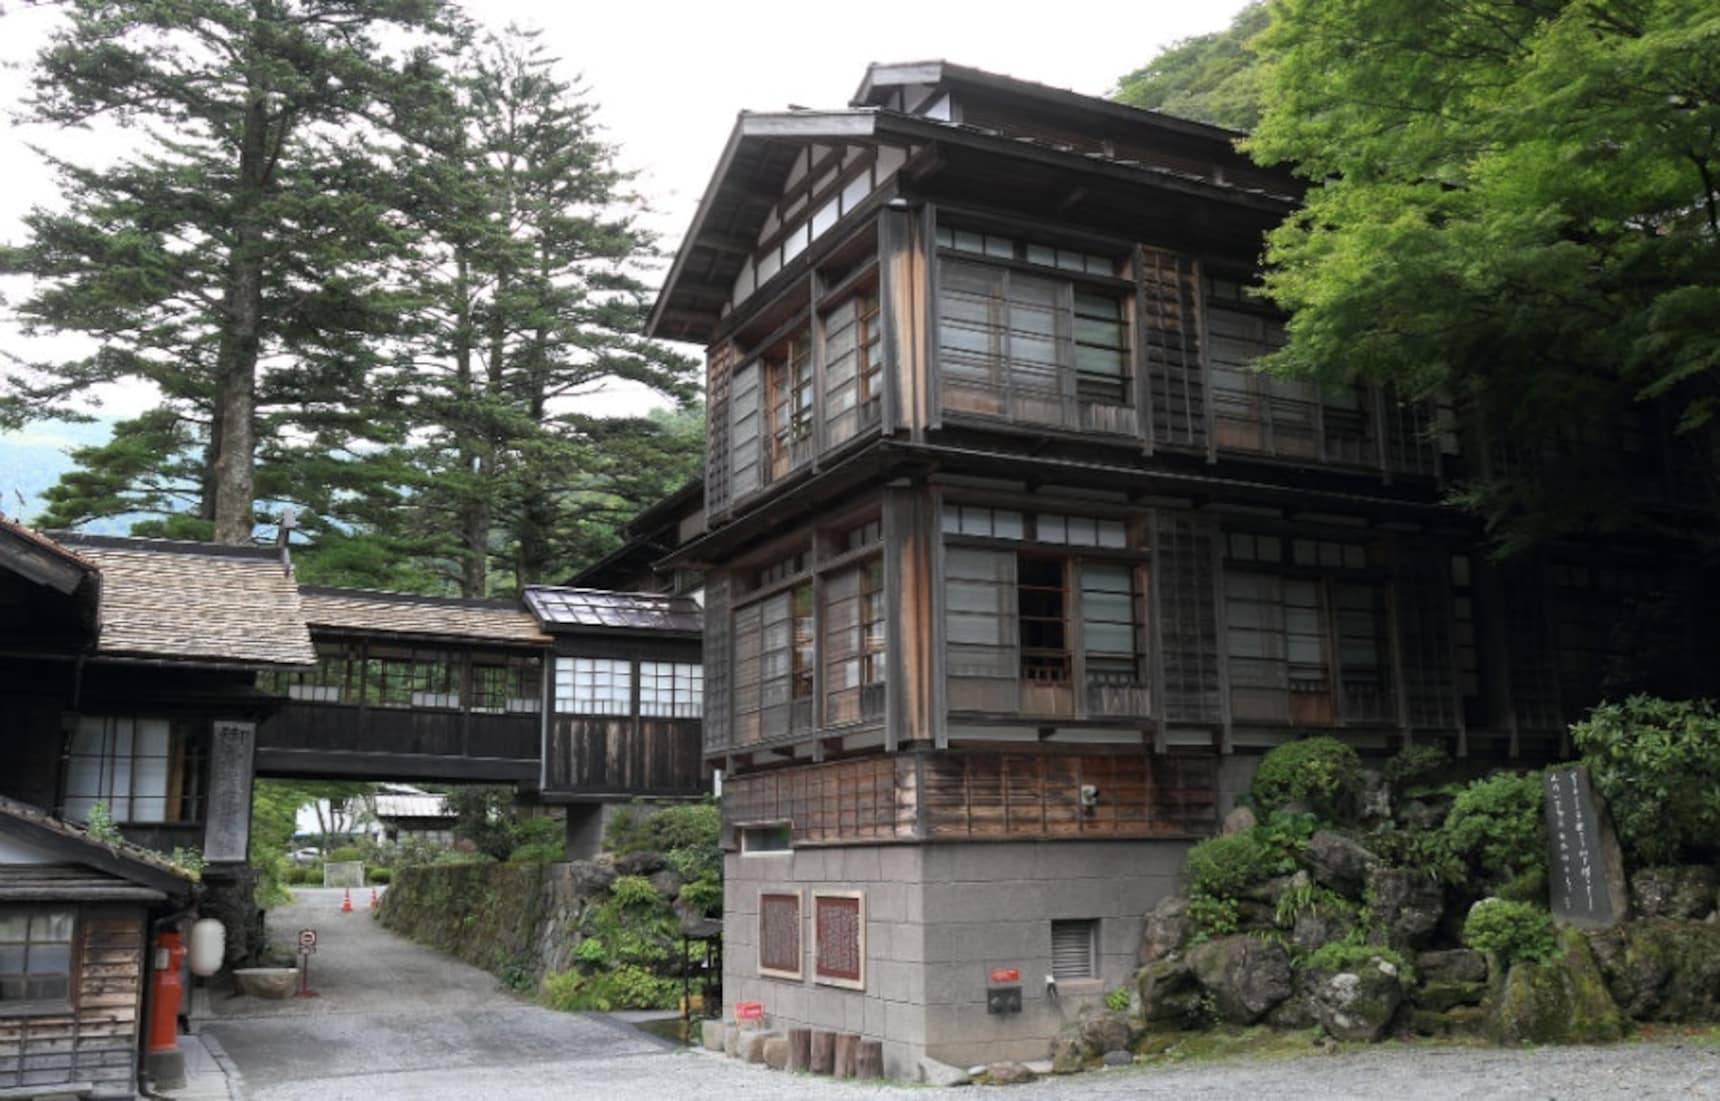 The Three Oldest Hotels in the World